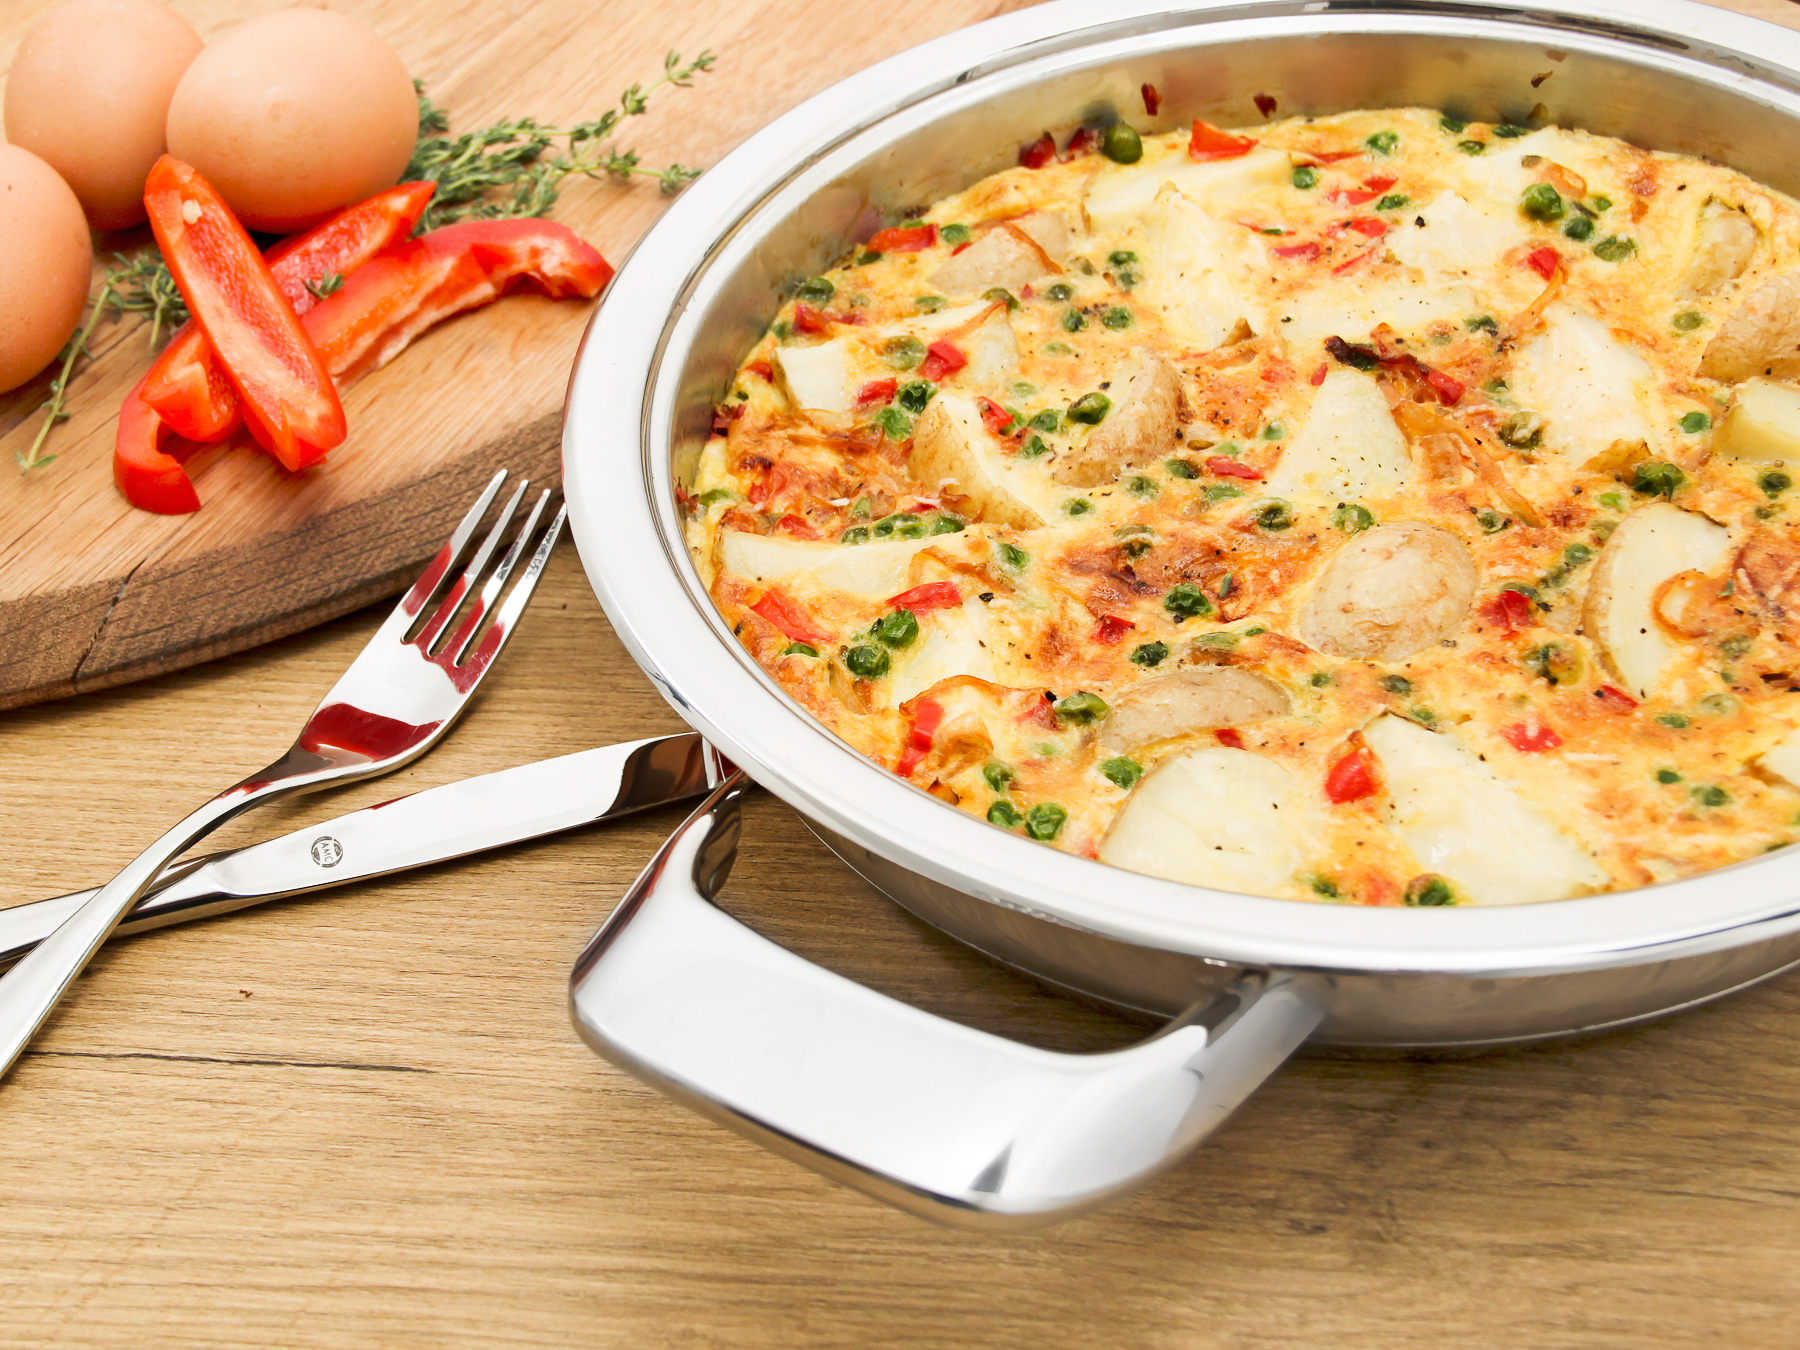 baby potato and parmesan frittata in AMC Synergy 24cm skilletbaby potato and parmesan frittata in AMC Synergy 24cm skillet